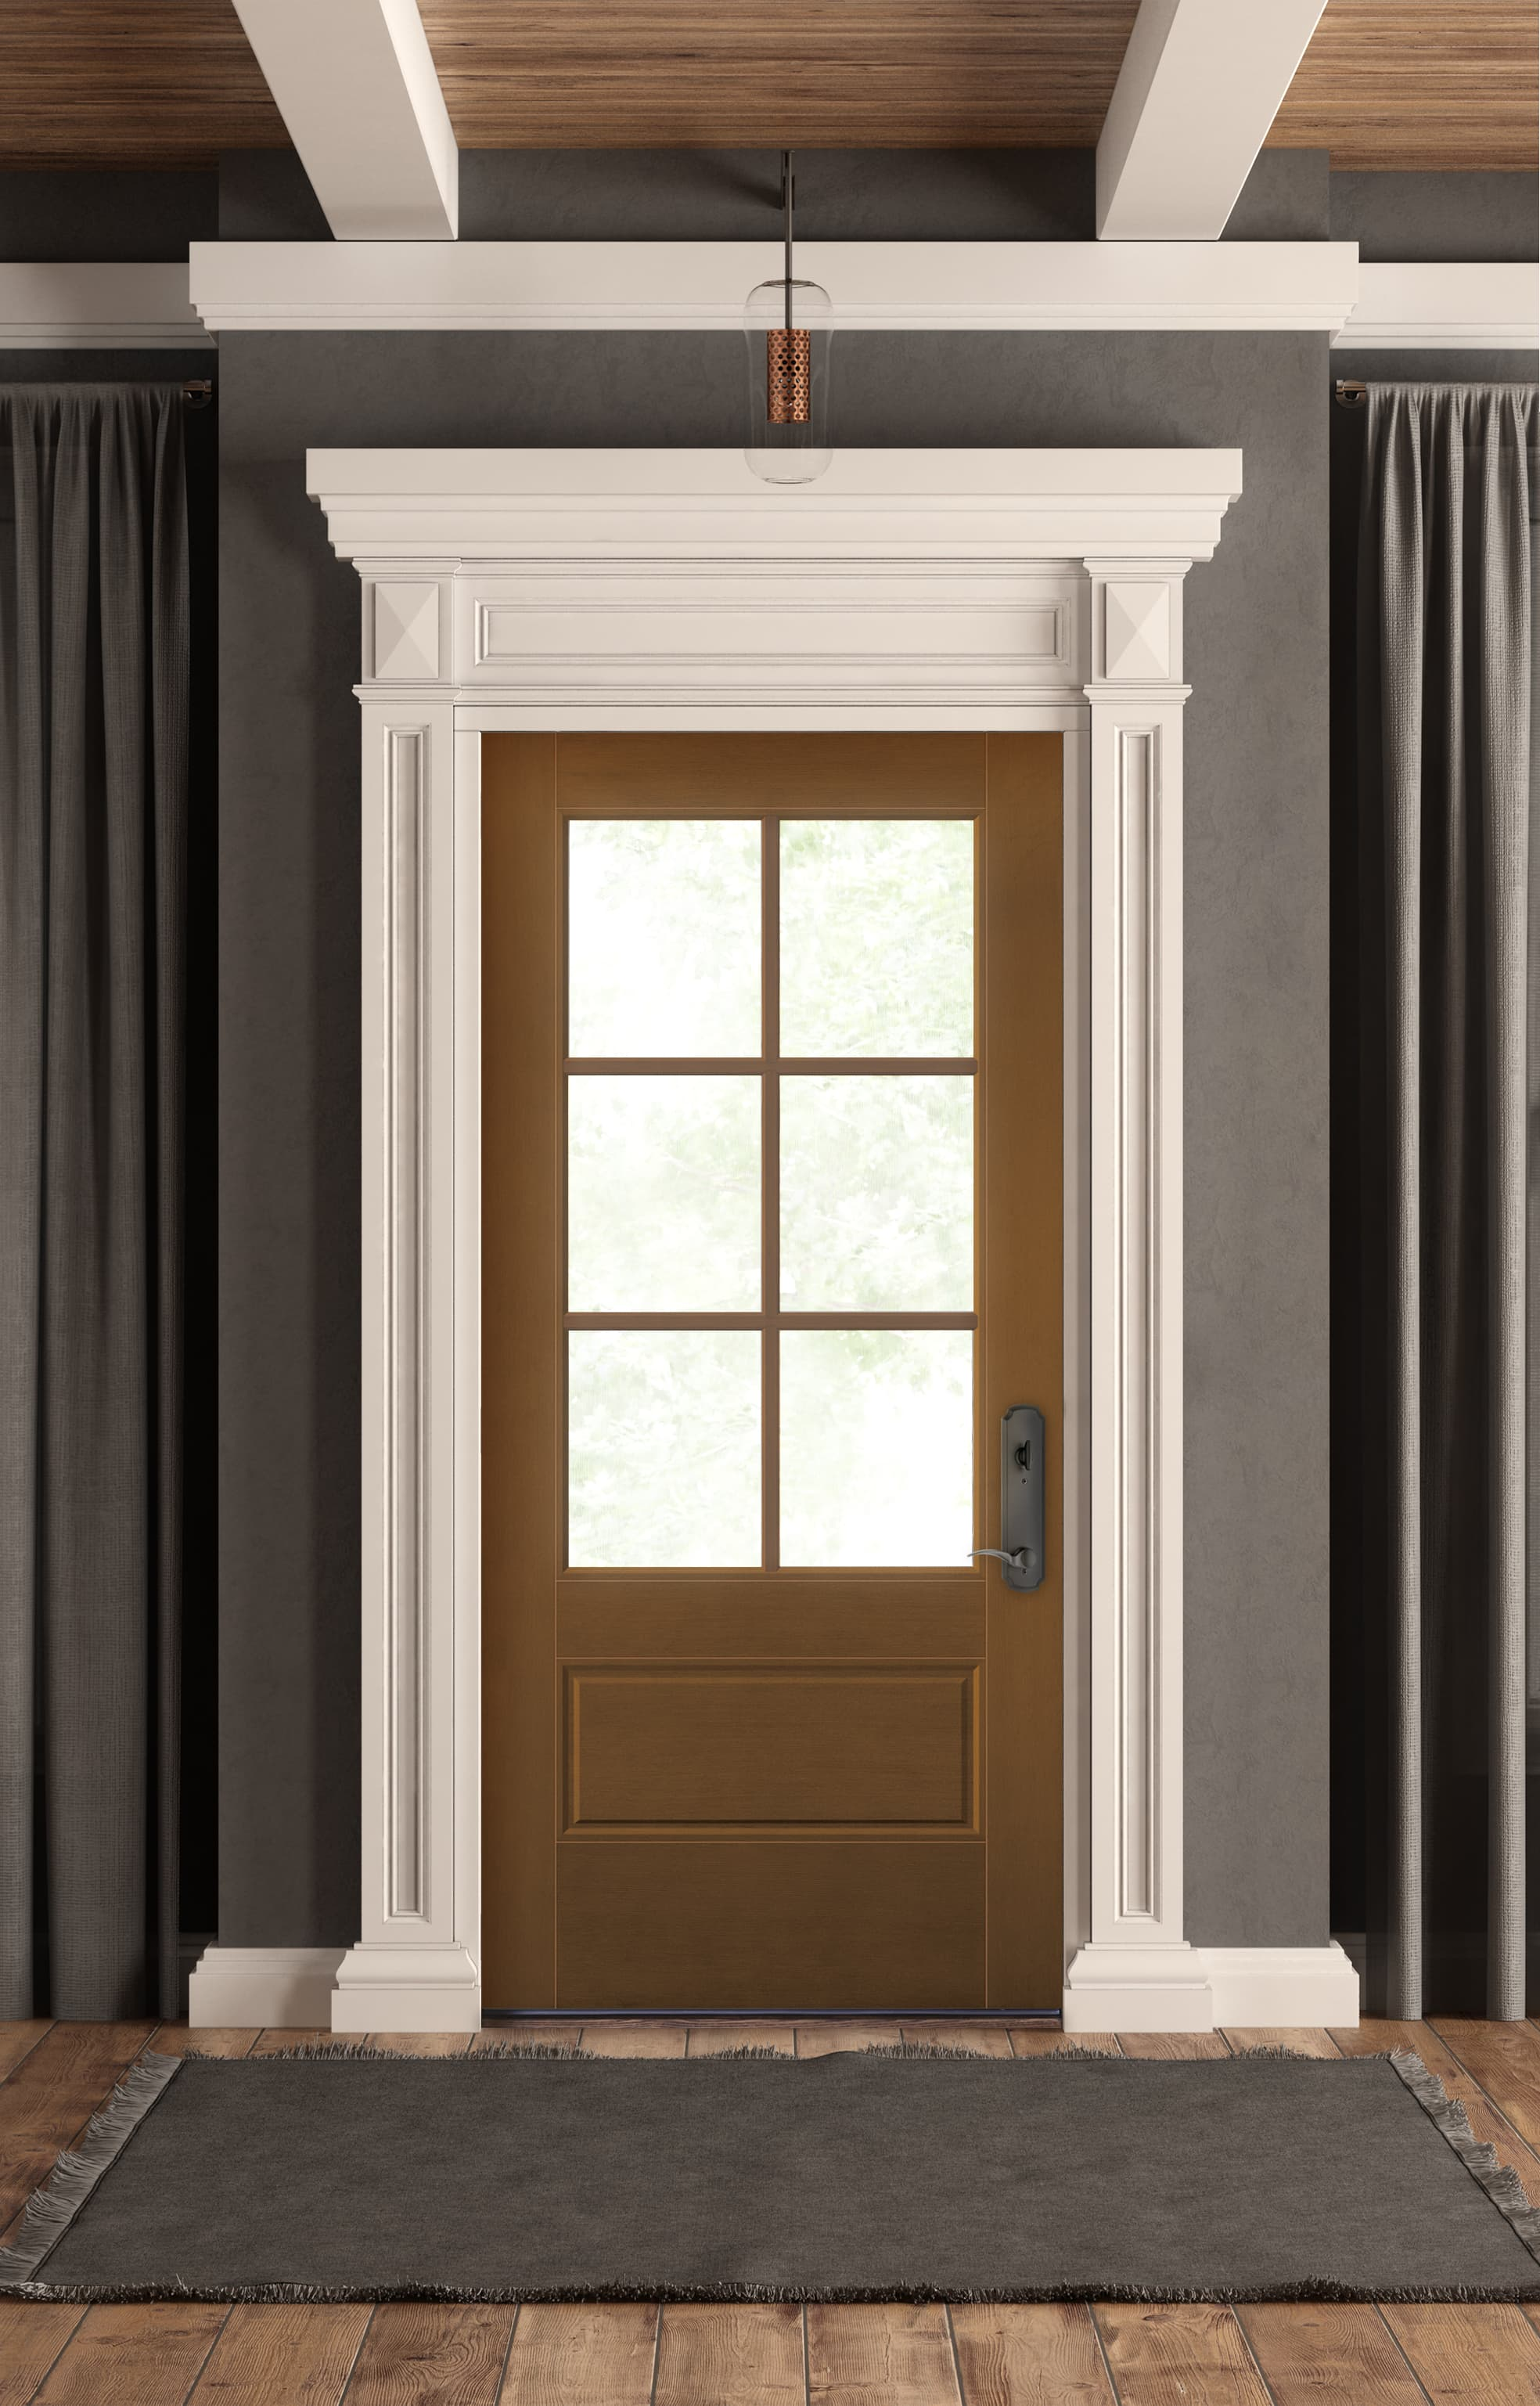 Brown front door with white decorative trim contrasts gray walls in entry